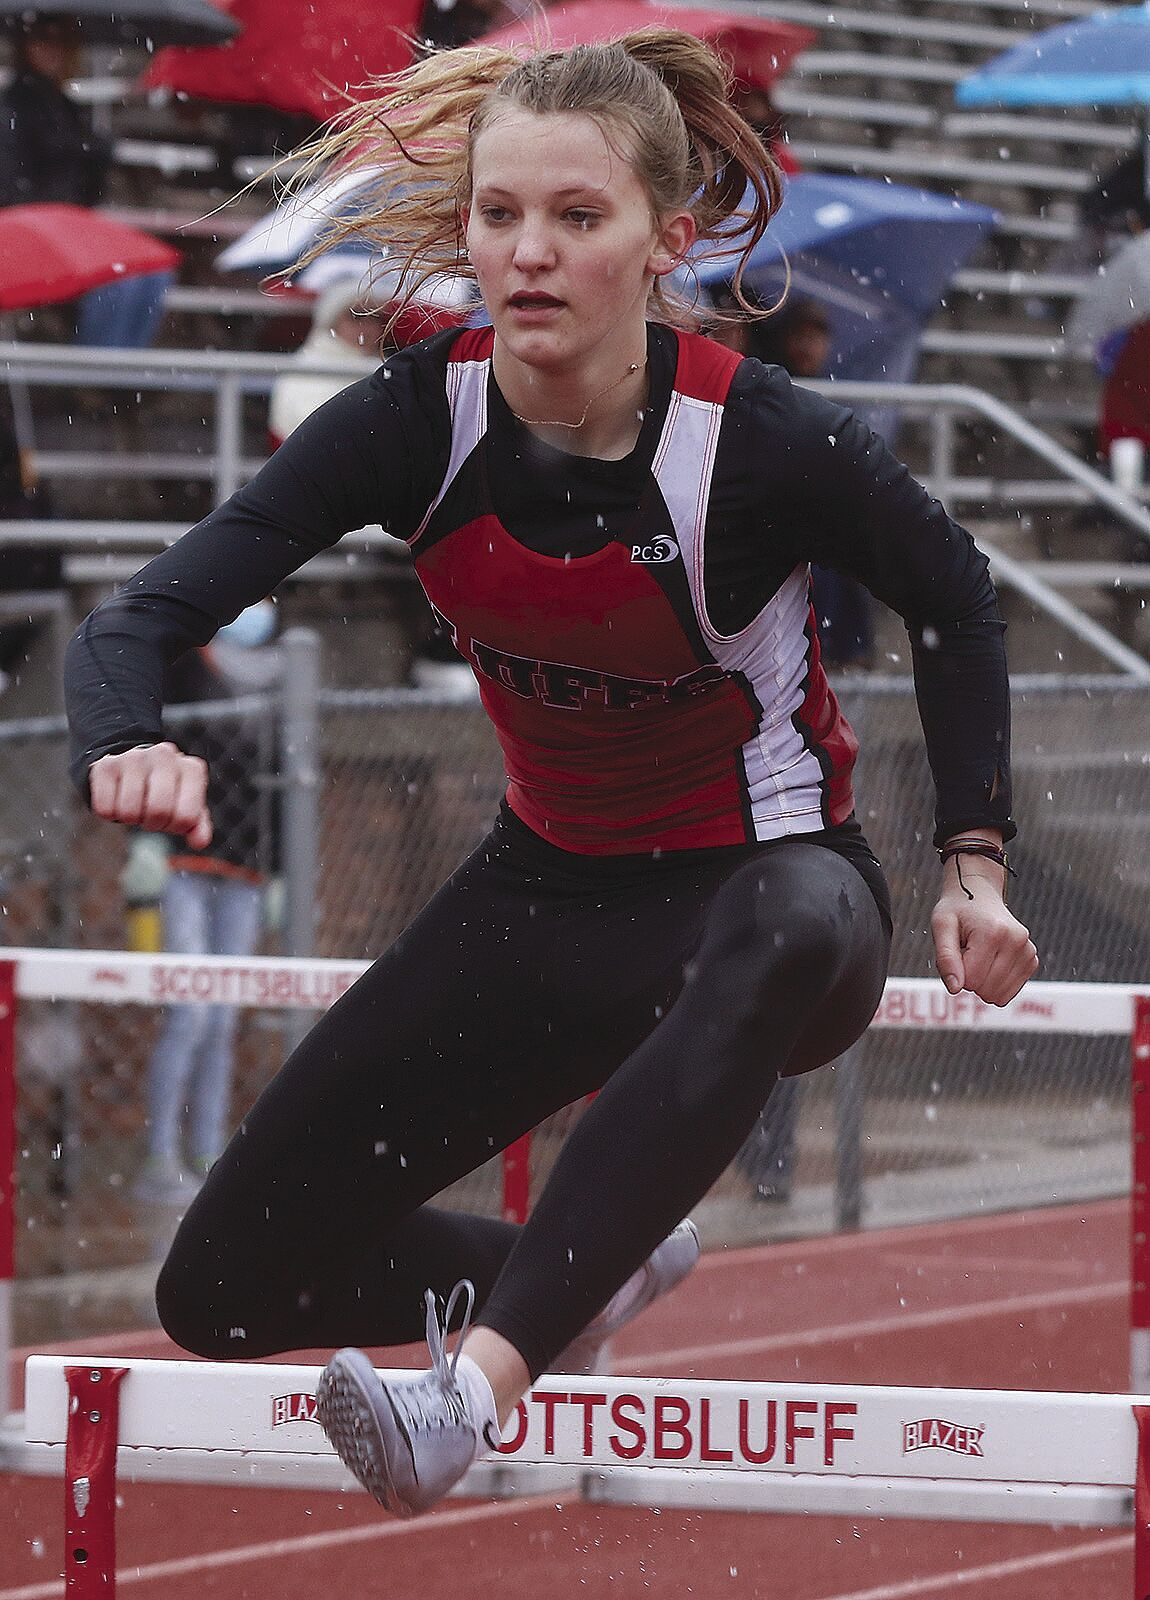 Scottsbluff's Paige Horne quickly making a name for herself in hurdles